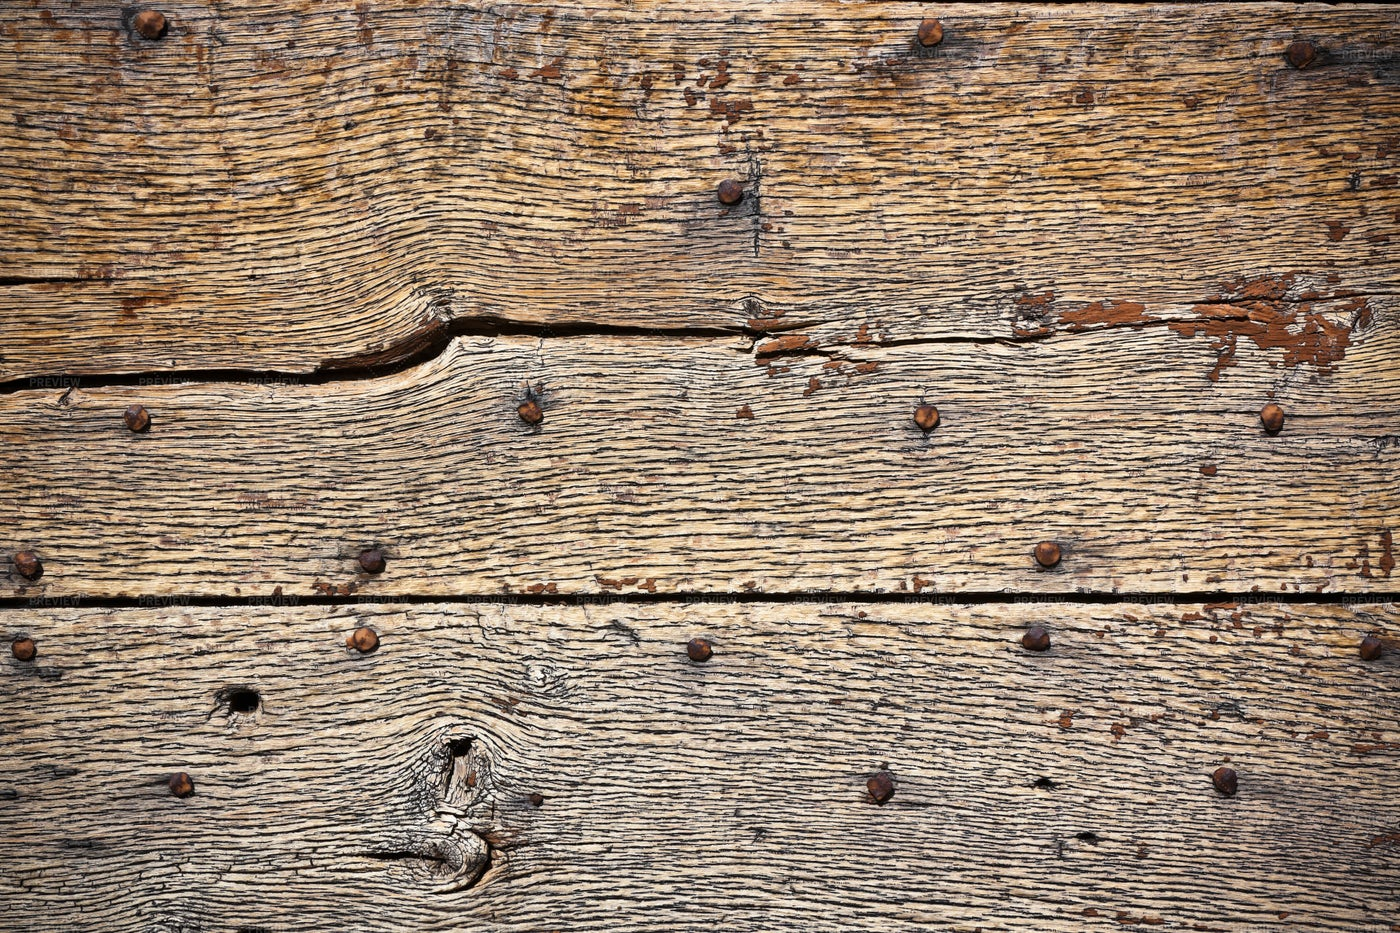 Wooden Surface With Old Rivets: Stock Photos